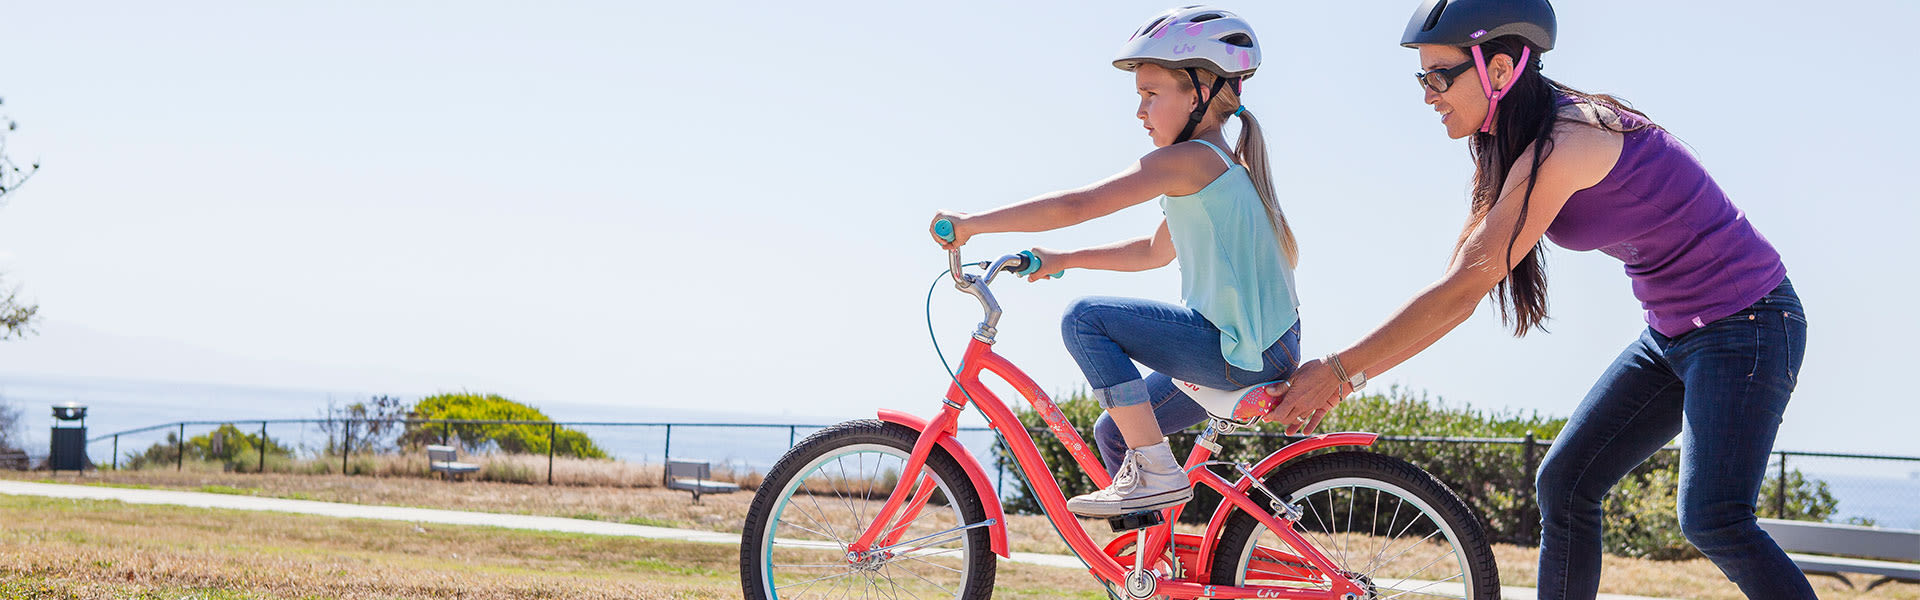 447caa7035b How to Teach an Anxious Kid How to Ride a Bike | Liv Cycling Official site